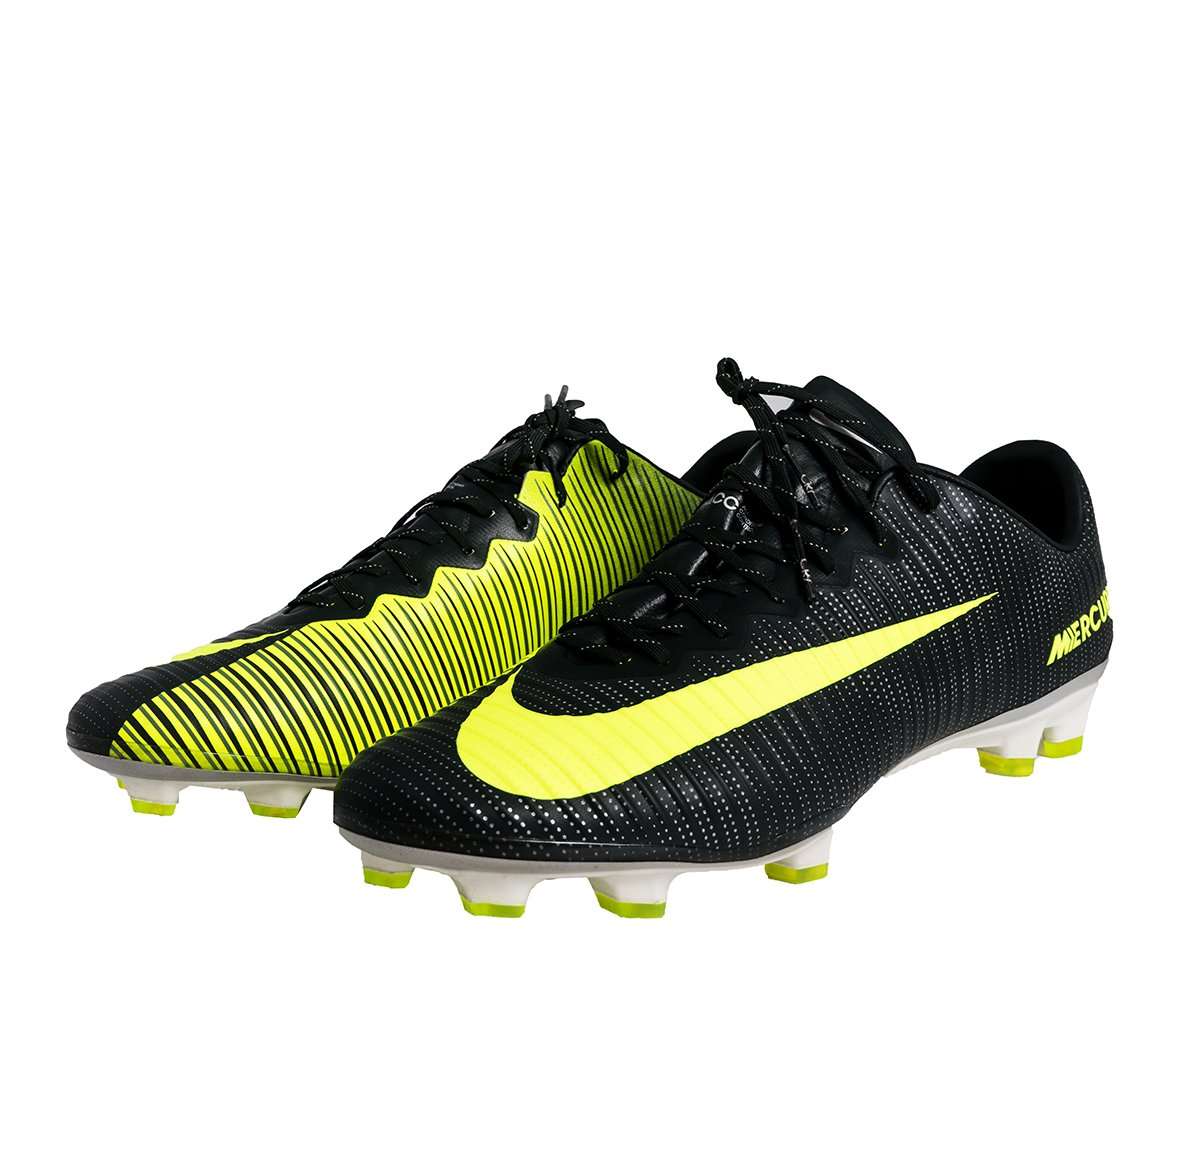 NIKE Mercurial Vapor XI CR7 FG Men's Firm Ground Soccer Cleat B01M9A80J4 10 M US|Seaweed/Volt